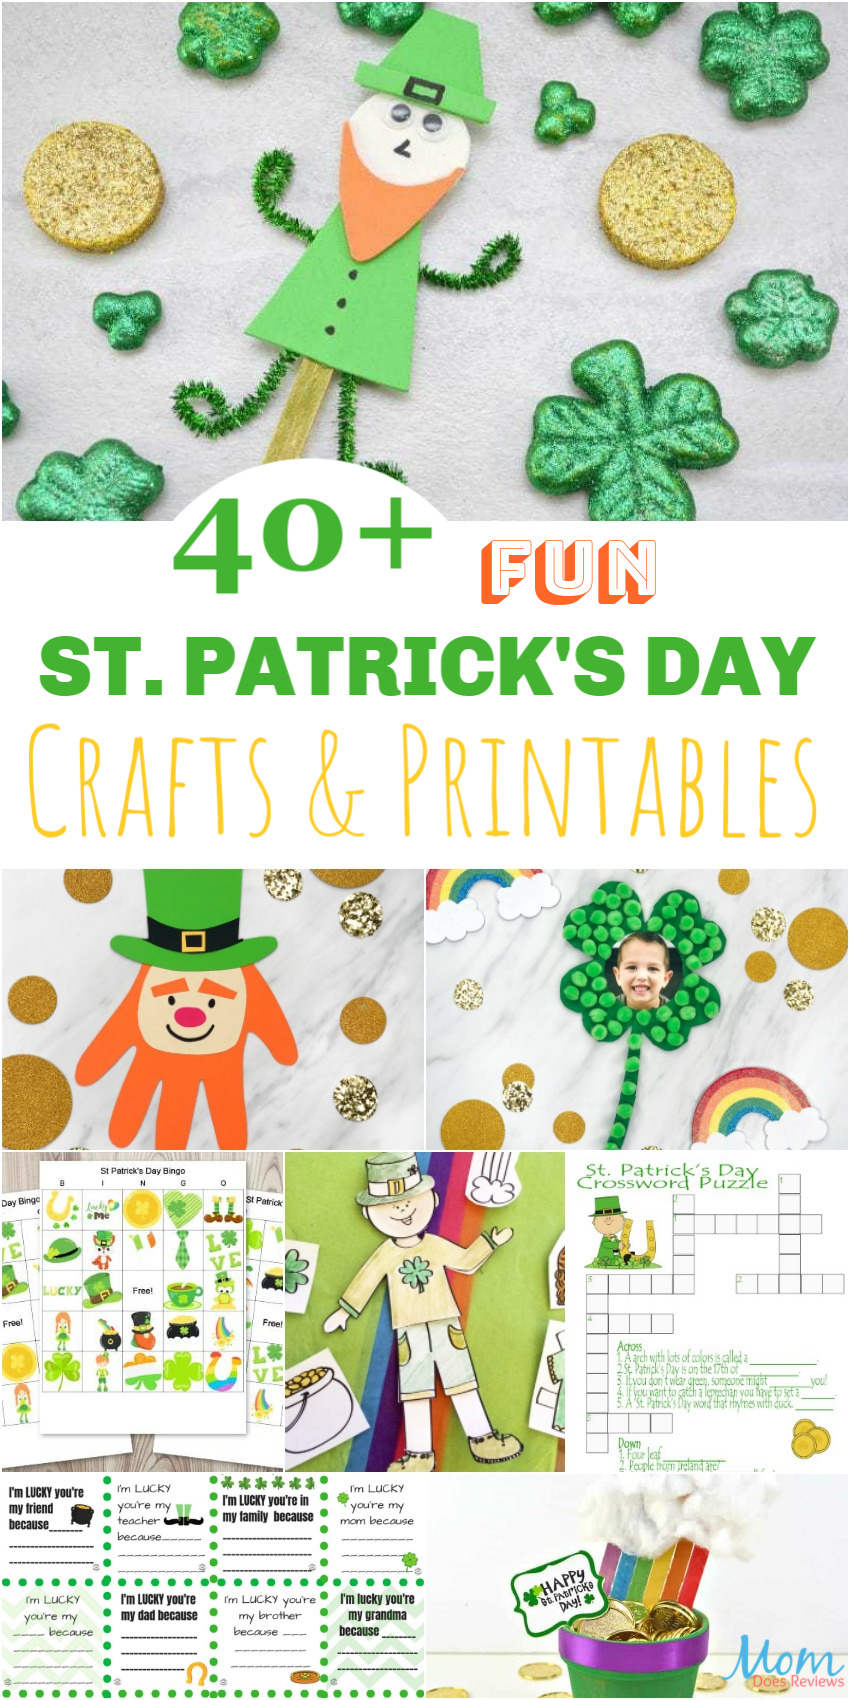 40+ FUN St. Patrick's Day Crafts & Printables for Kids #crafts #printables #funstuff